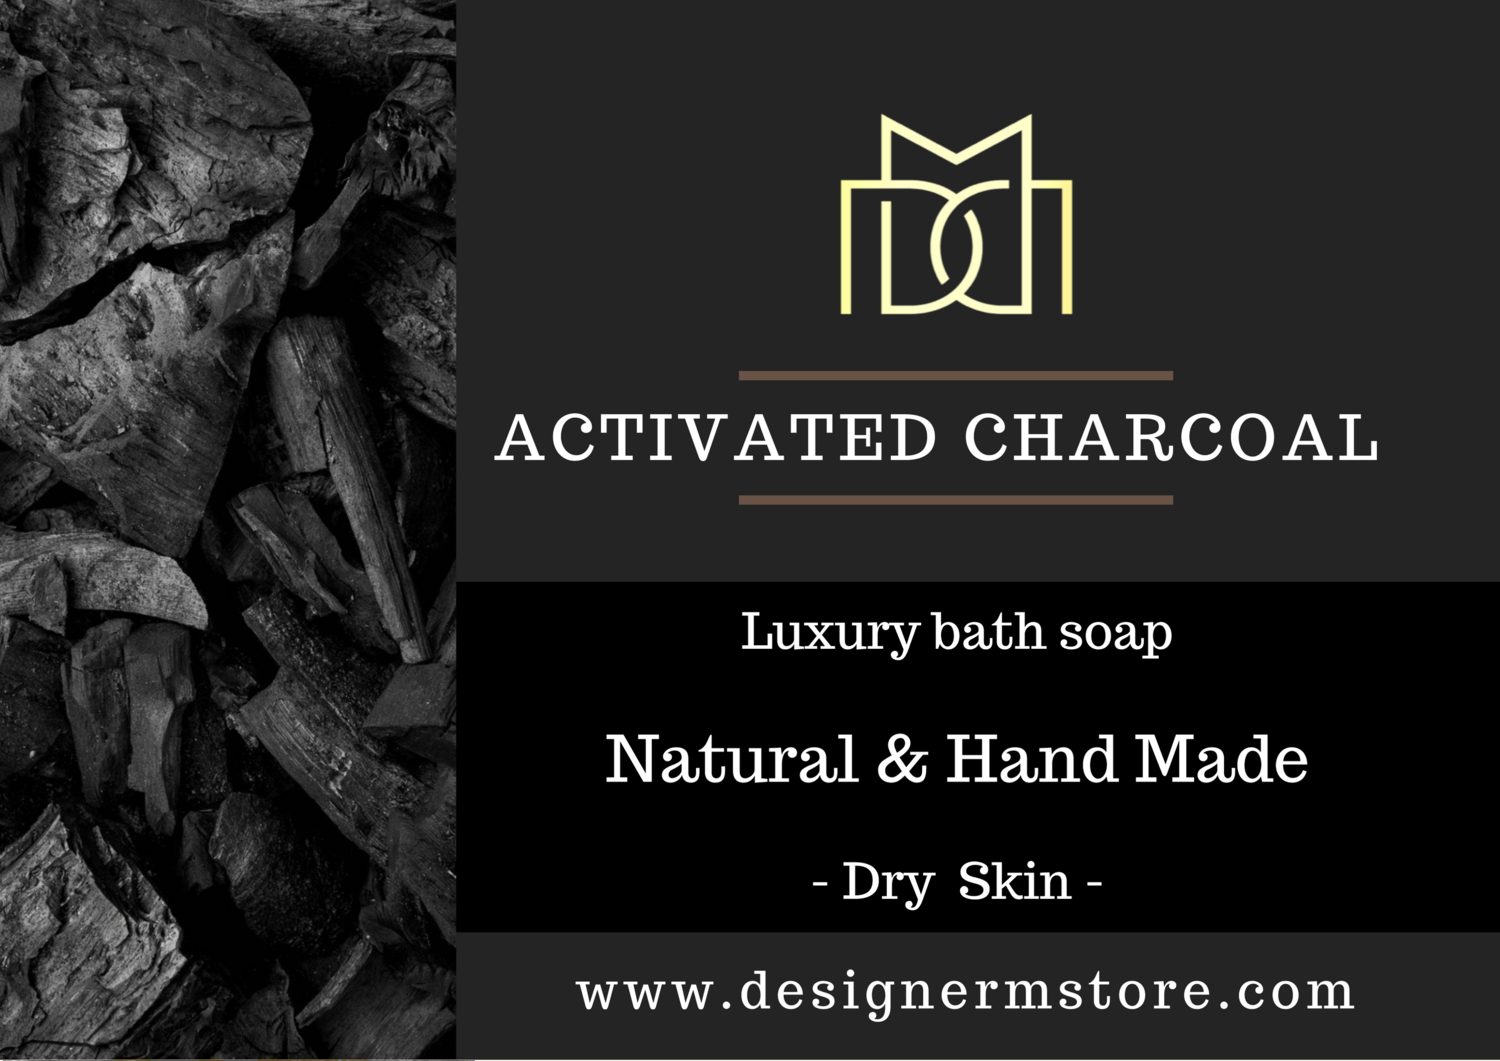 ACTIVATED CHARCOAL SOAP - For Dry Skin